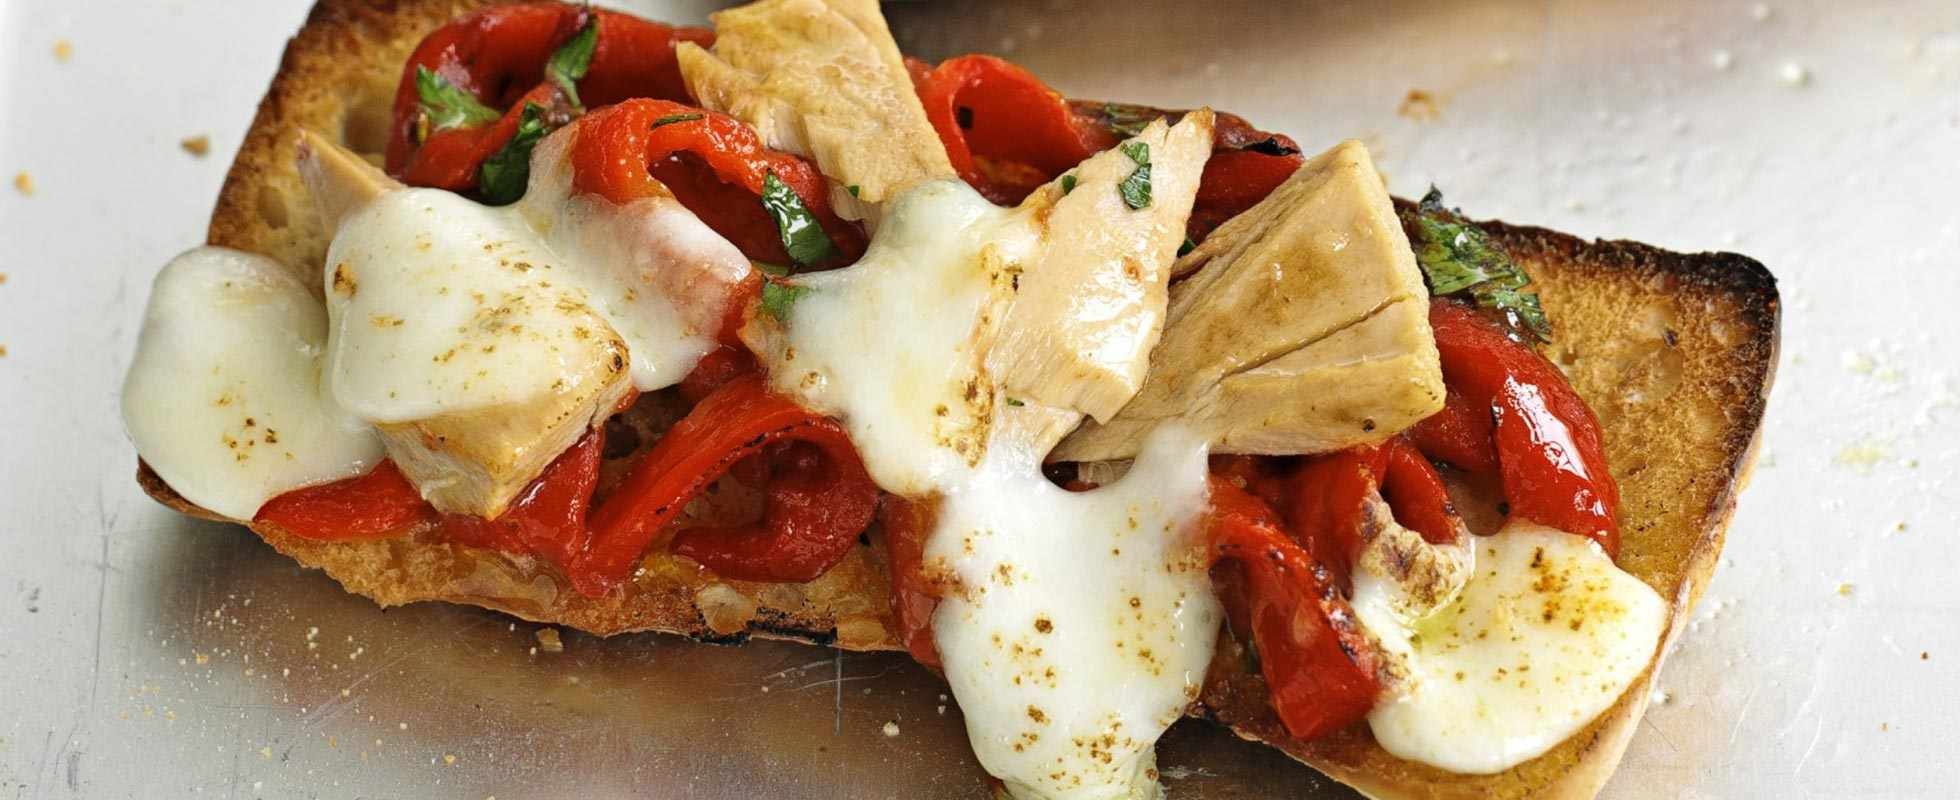 Roasted red pepper and tuna panini pizzas